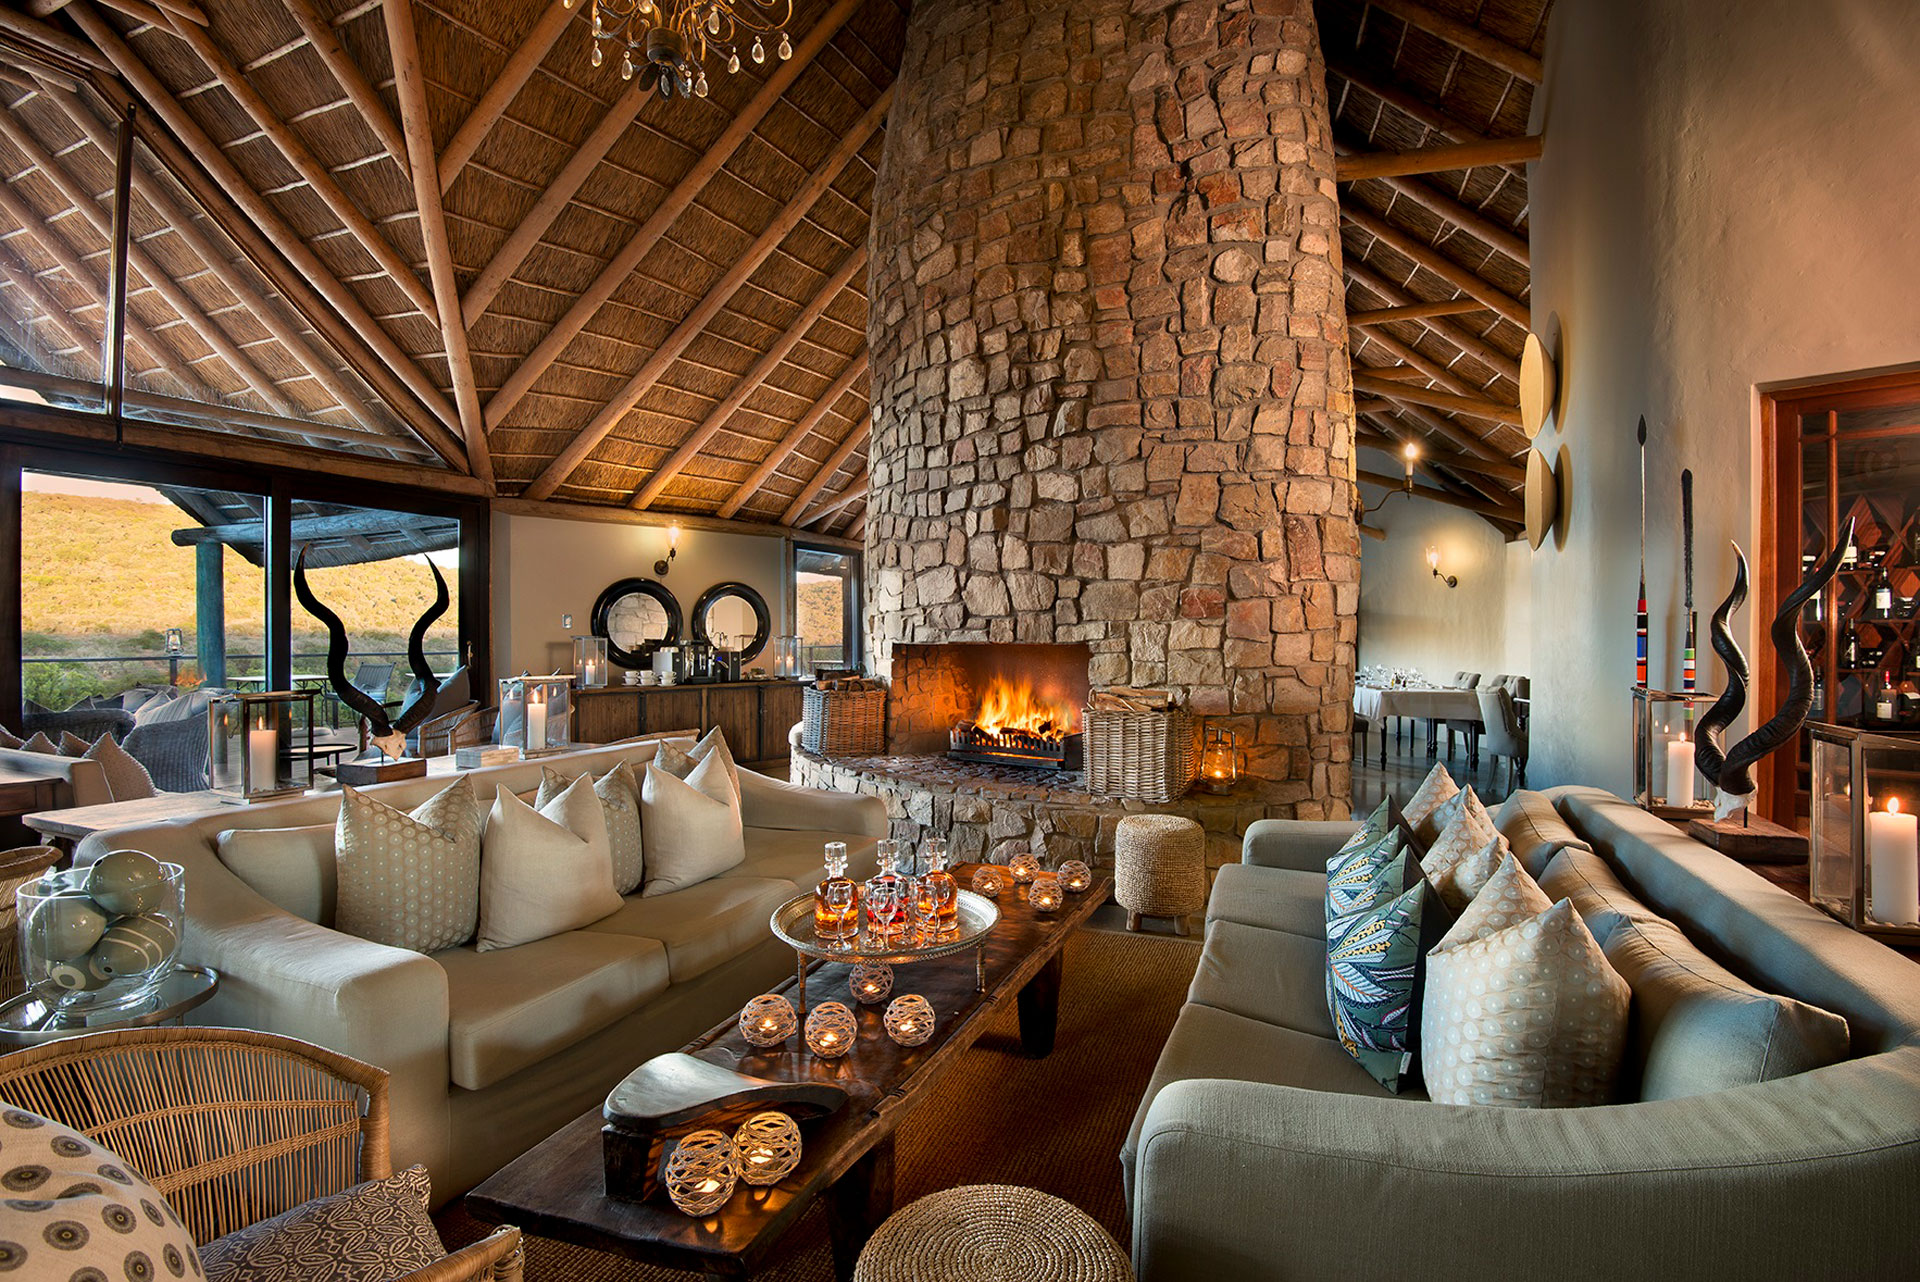 The lounge at Great Fish River Lodge with couches, tables and a fireplace